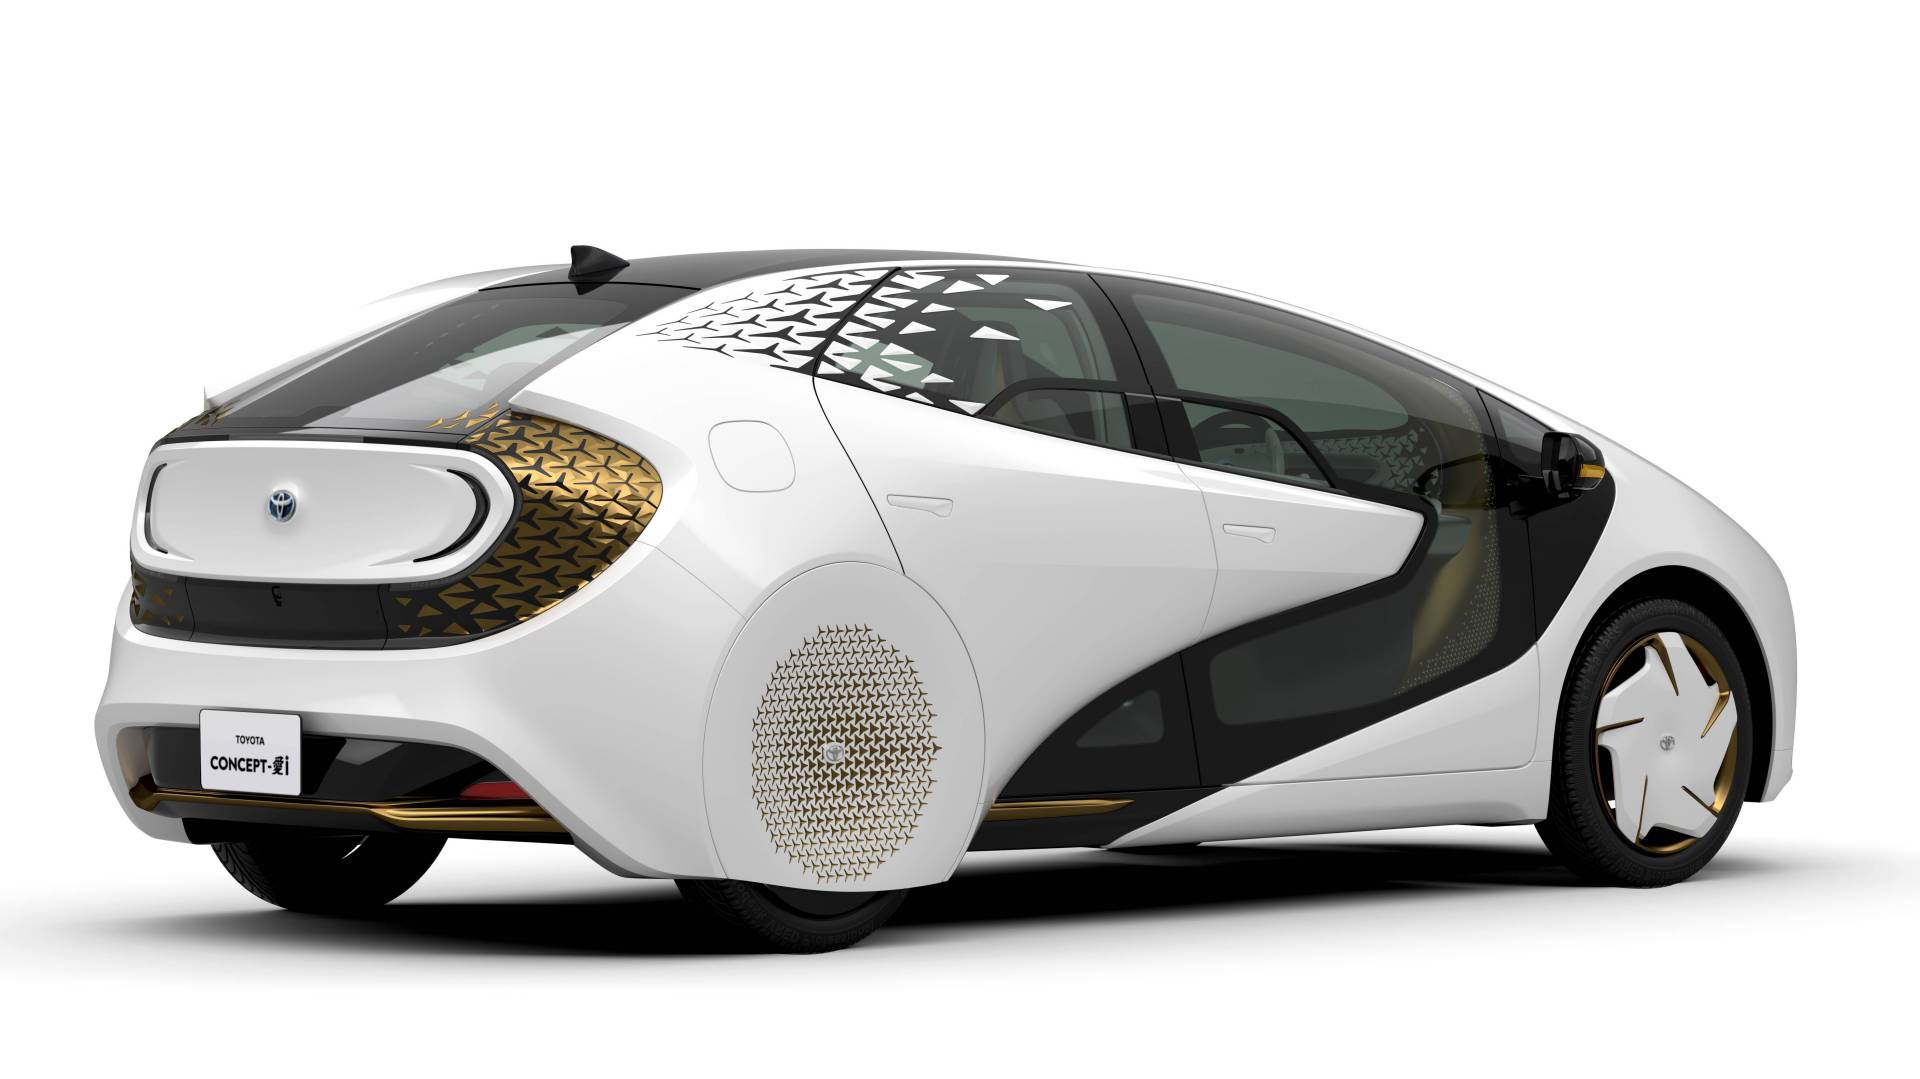 Updated-Toyota-Concept-i-and-e-Palette-for-Tokyo-Olympic-Games-2020-3